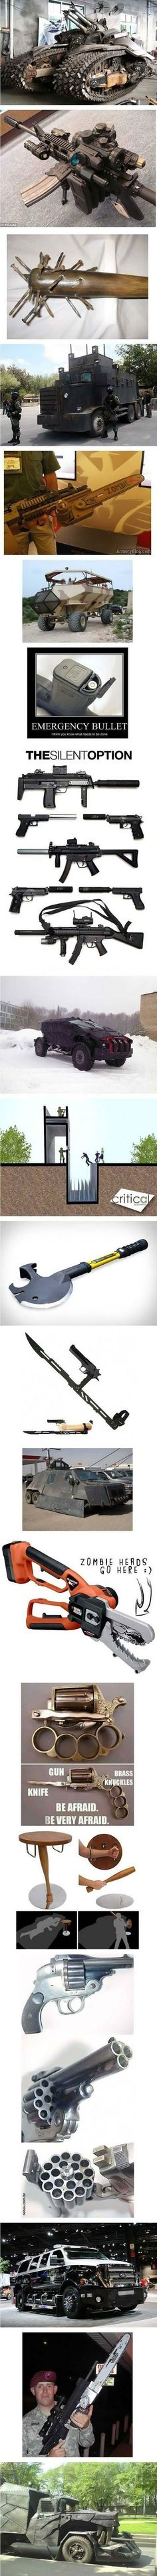 Supplies for the zombie apocalypse.